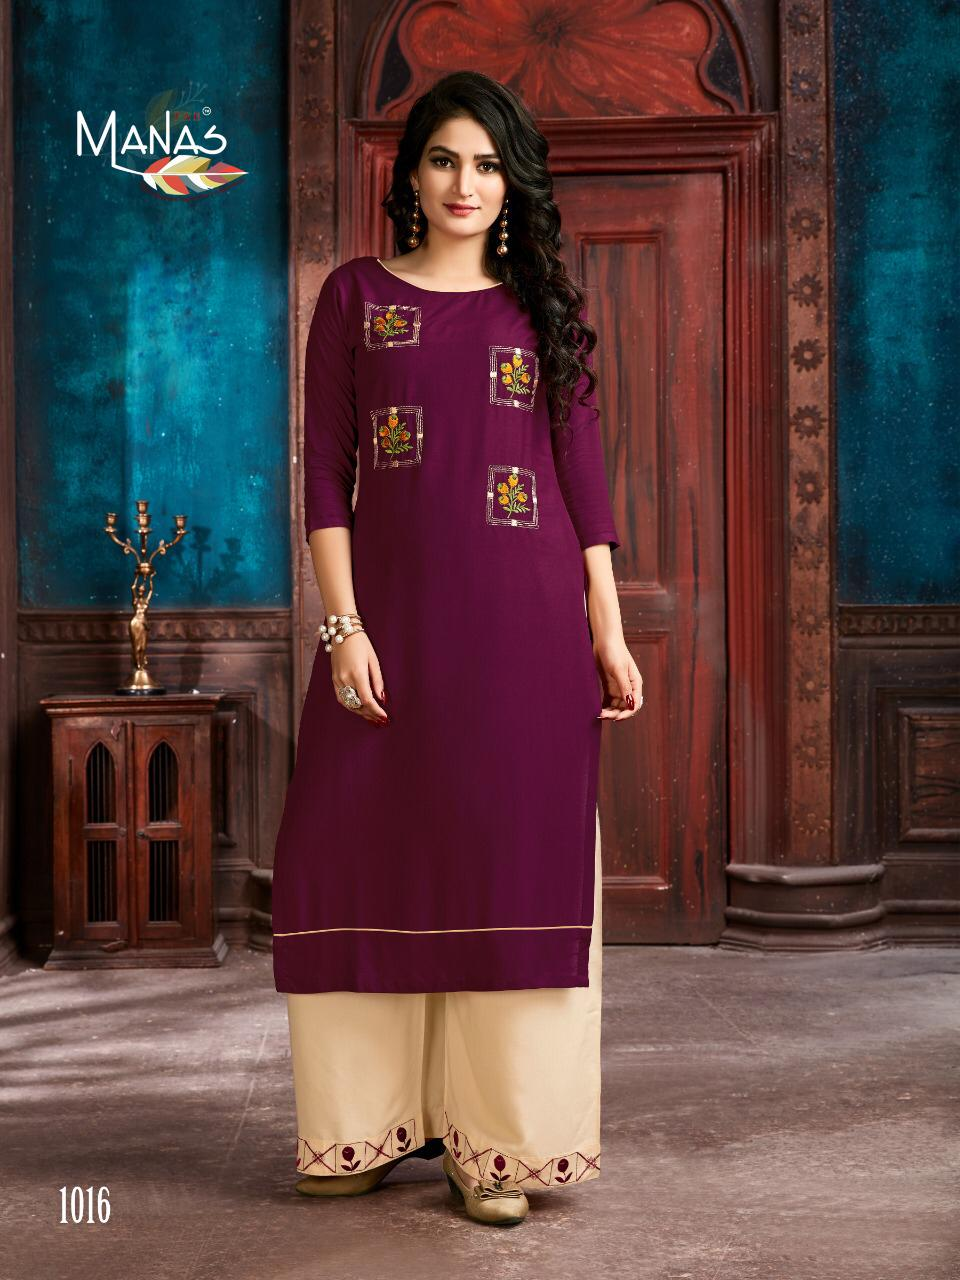 Manas Anishka Vol 3 collection 2